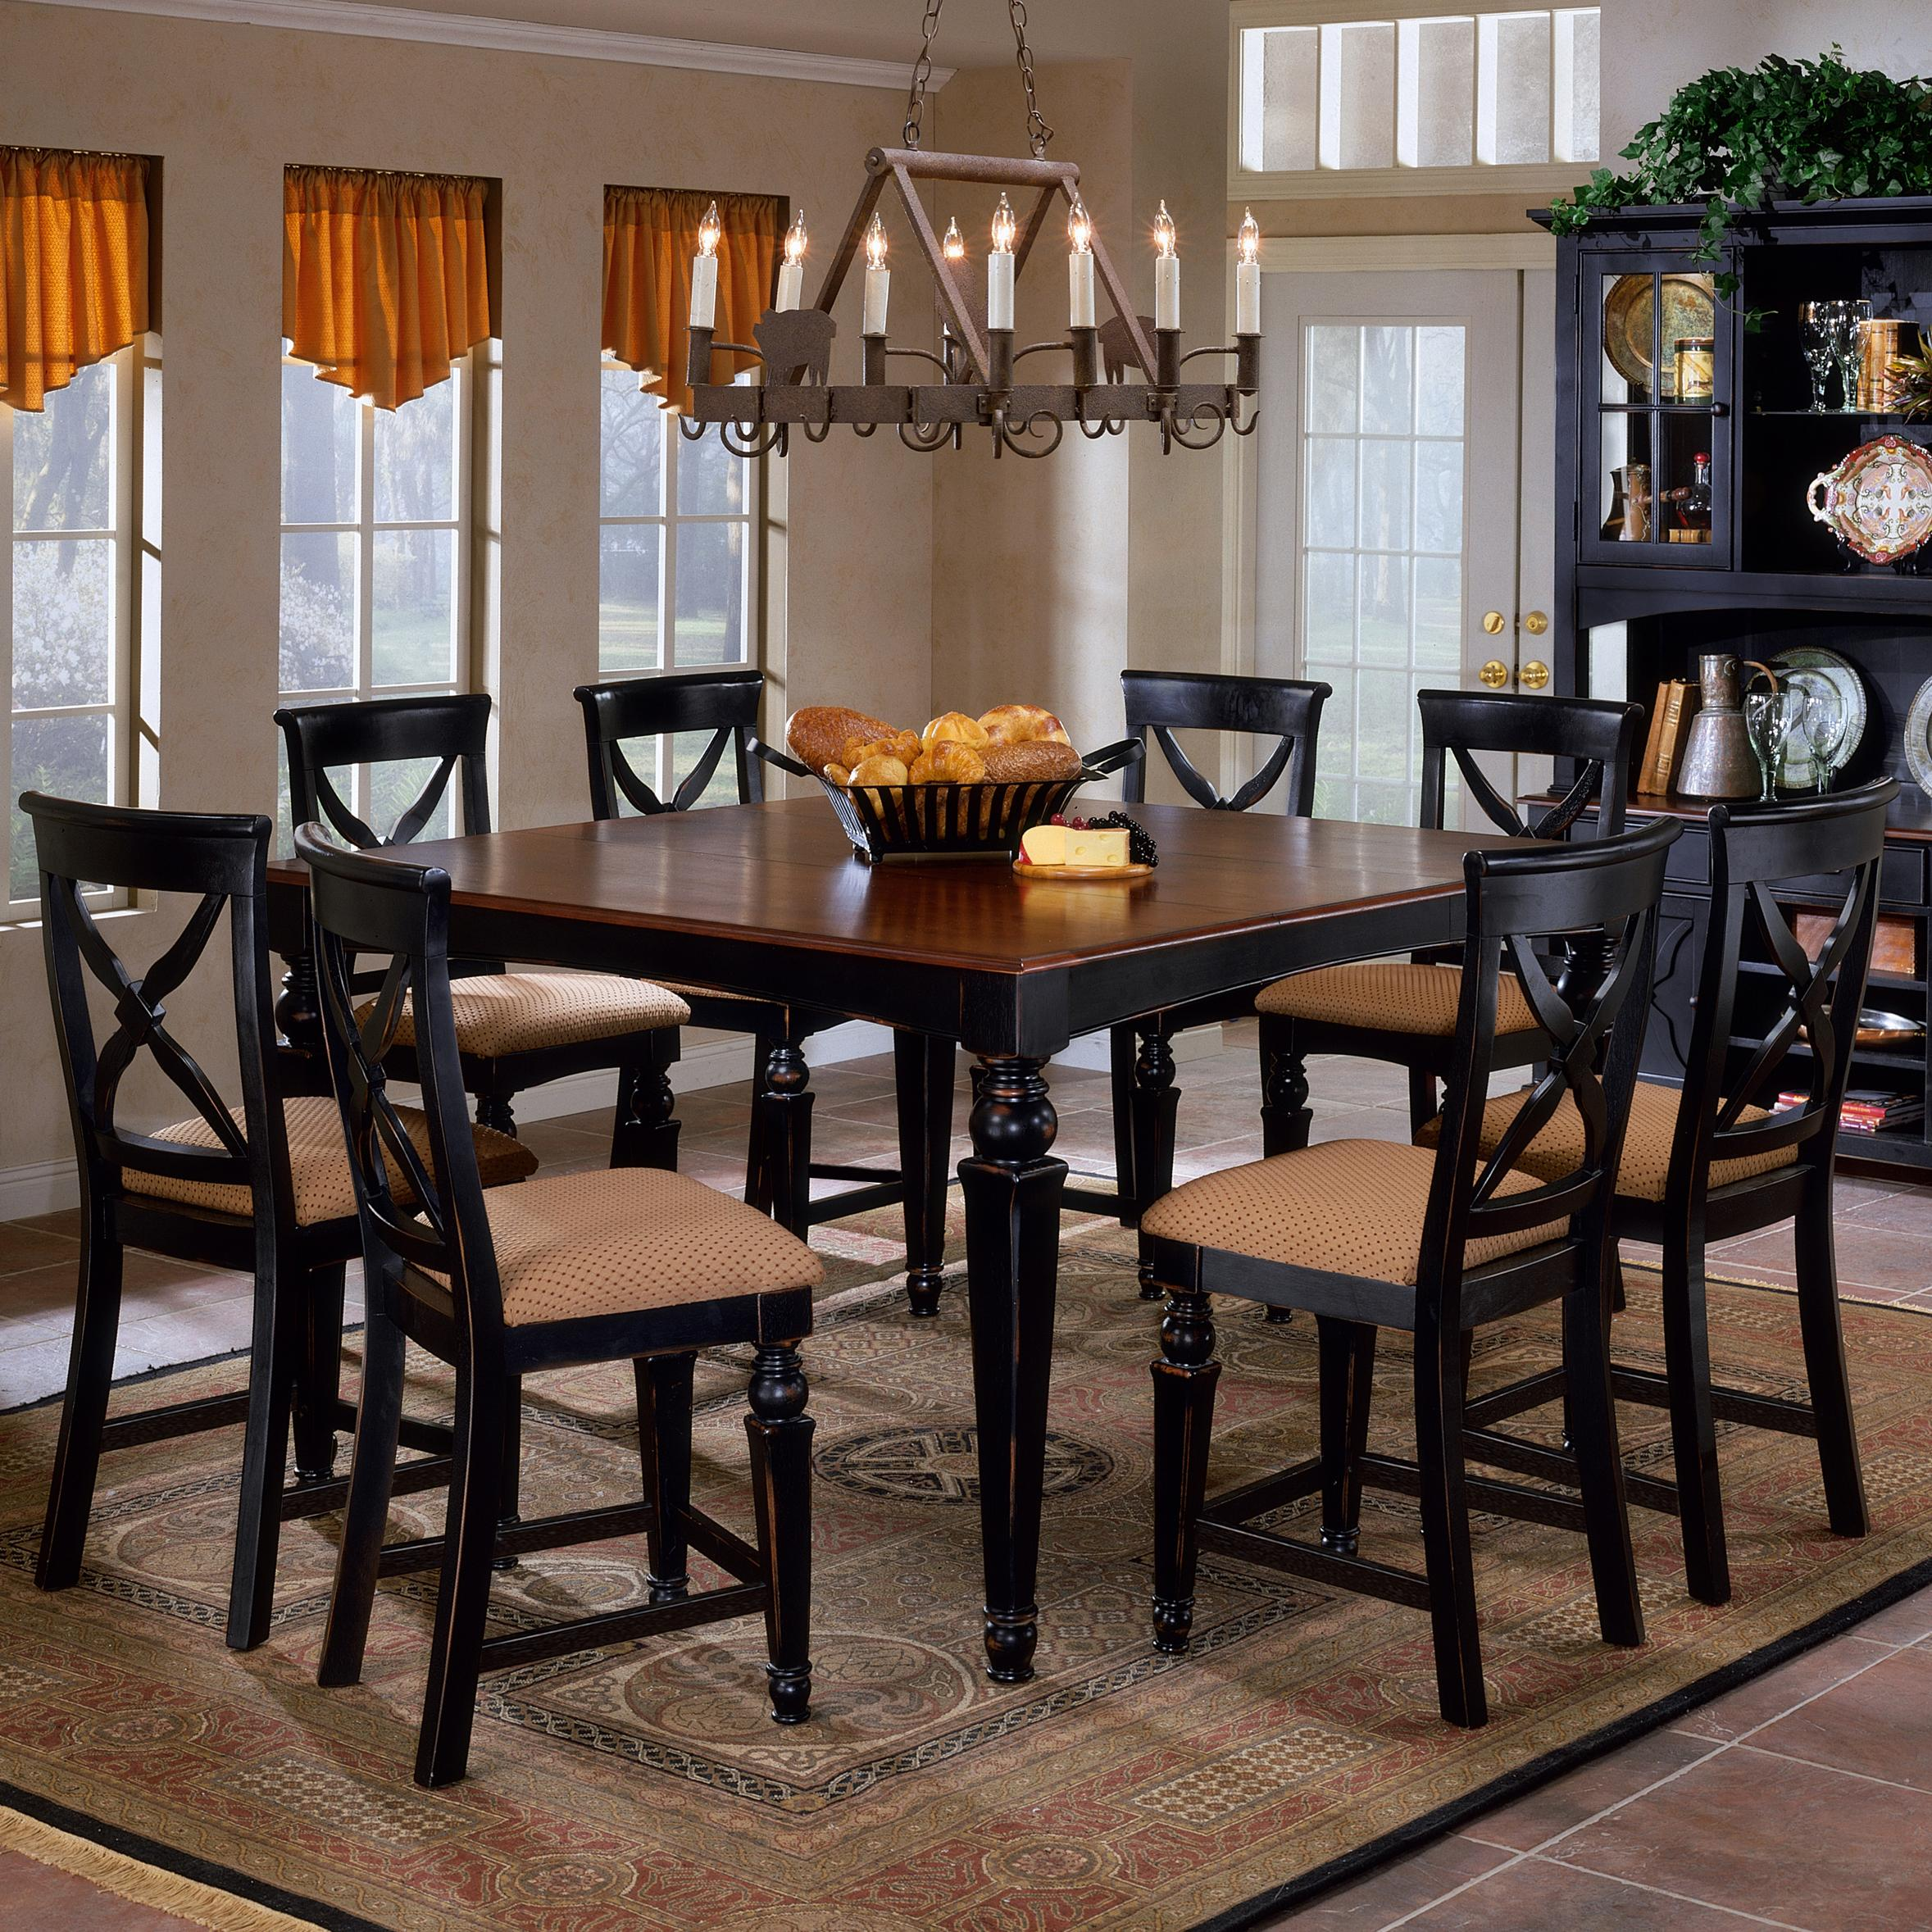 Hillsdale Northern Heights Oval Dining Table   Wayside Furniture   Dining  Room TableHillsdale Northern Heights Oval Dining Table   Wayside Furniture  . Correct Height Of A Dining Room Table. Home Design Ideas